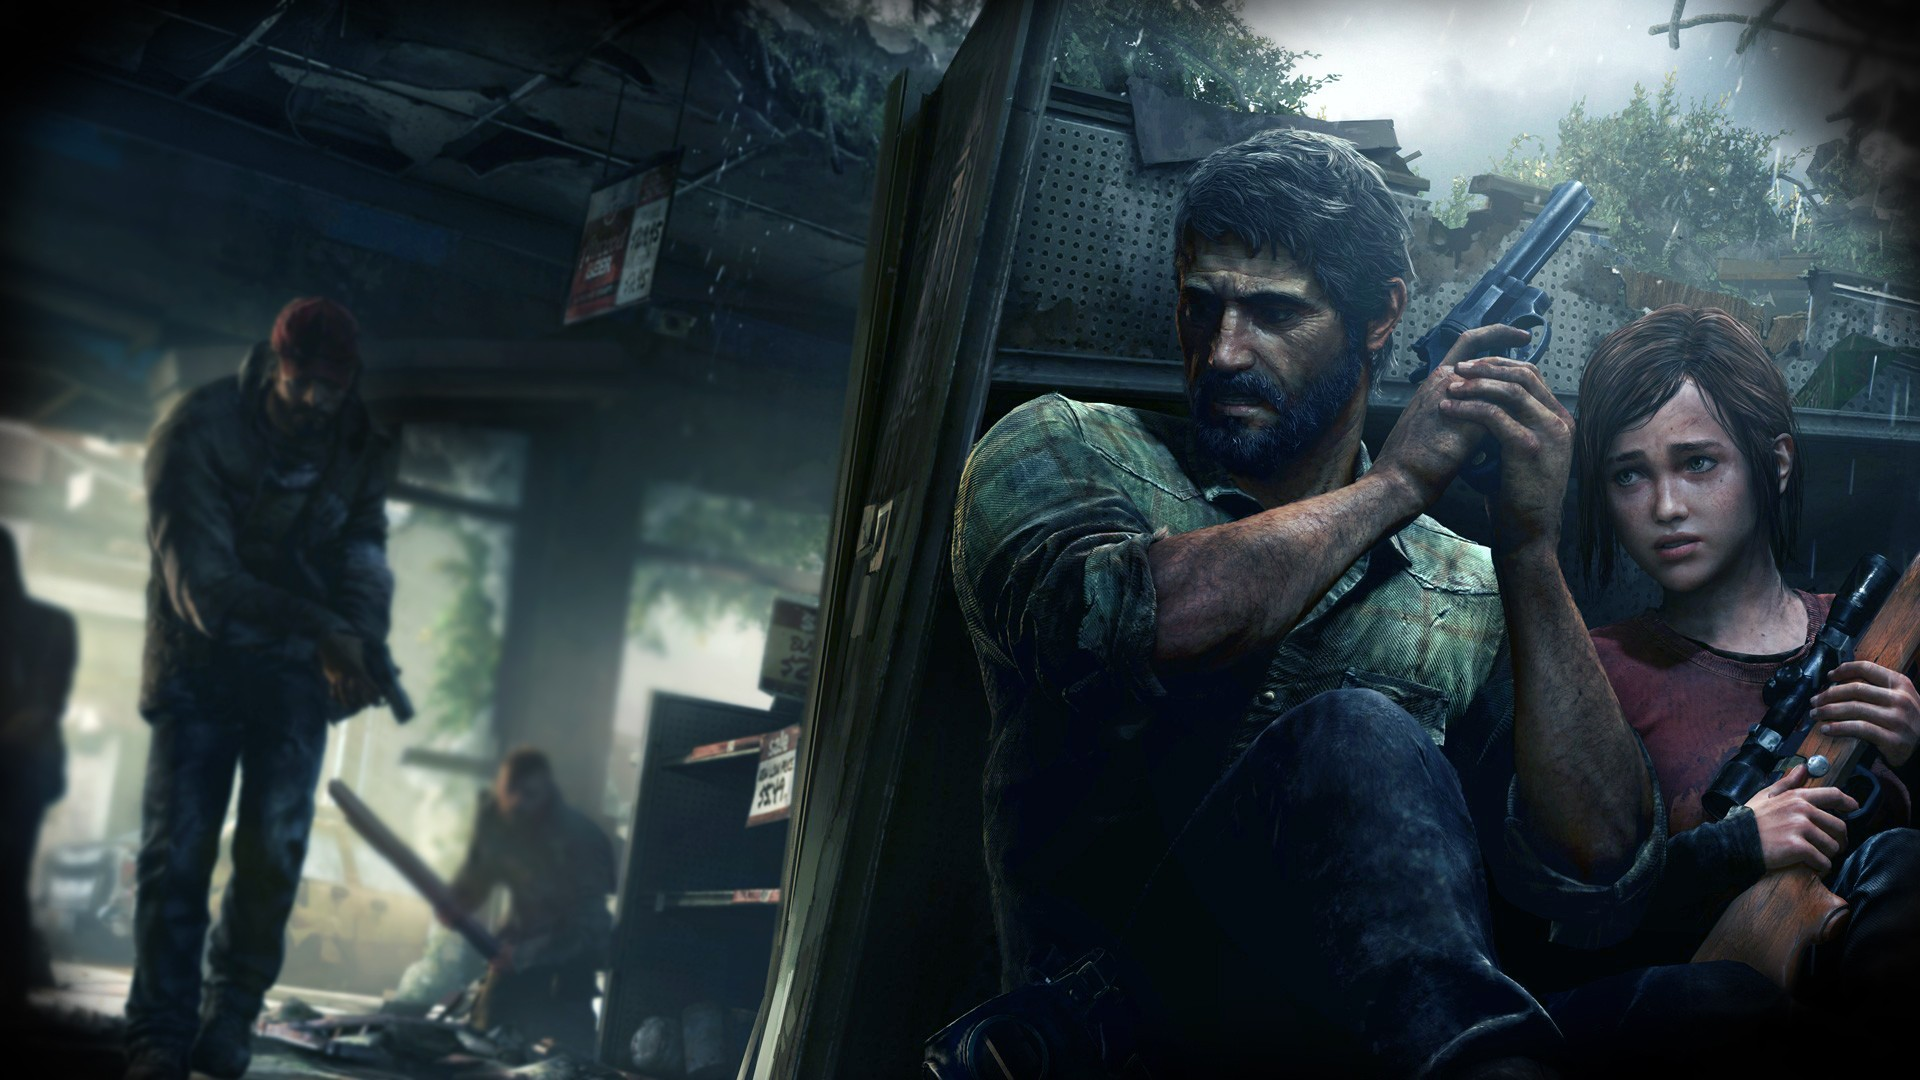 Xbox Games Reviews The Last Of Us Review Stimulated Boredom